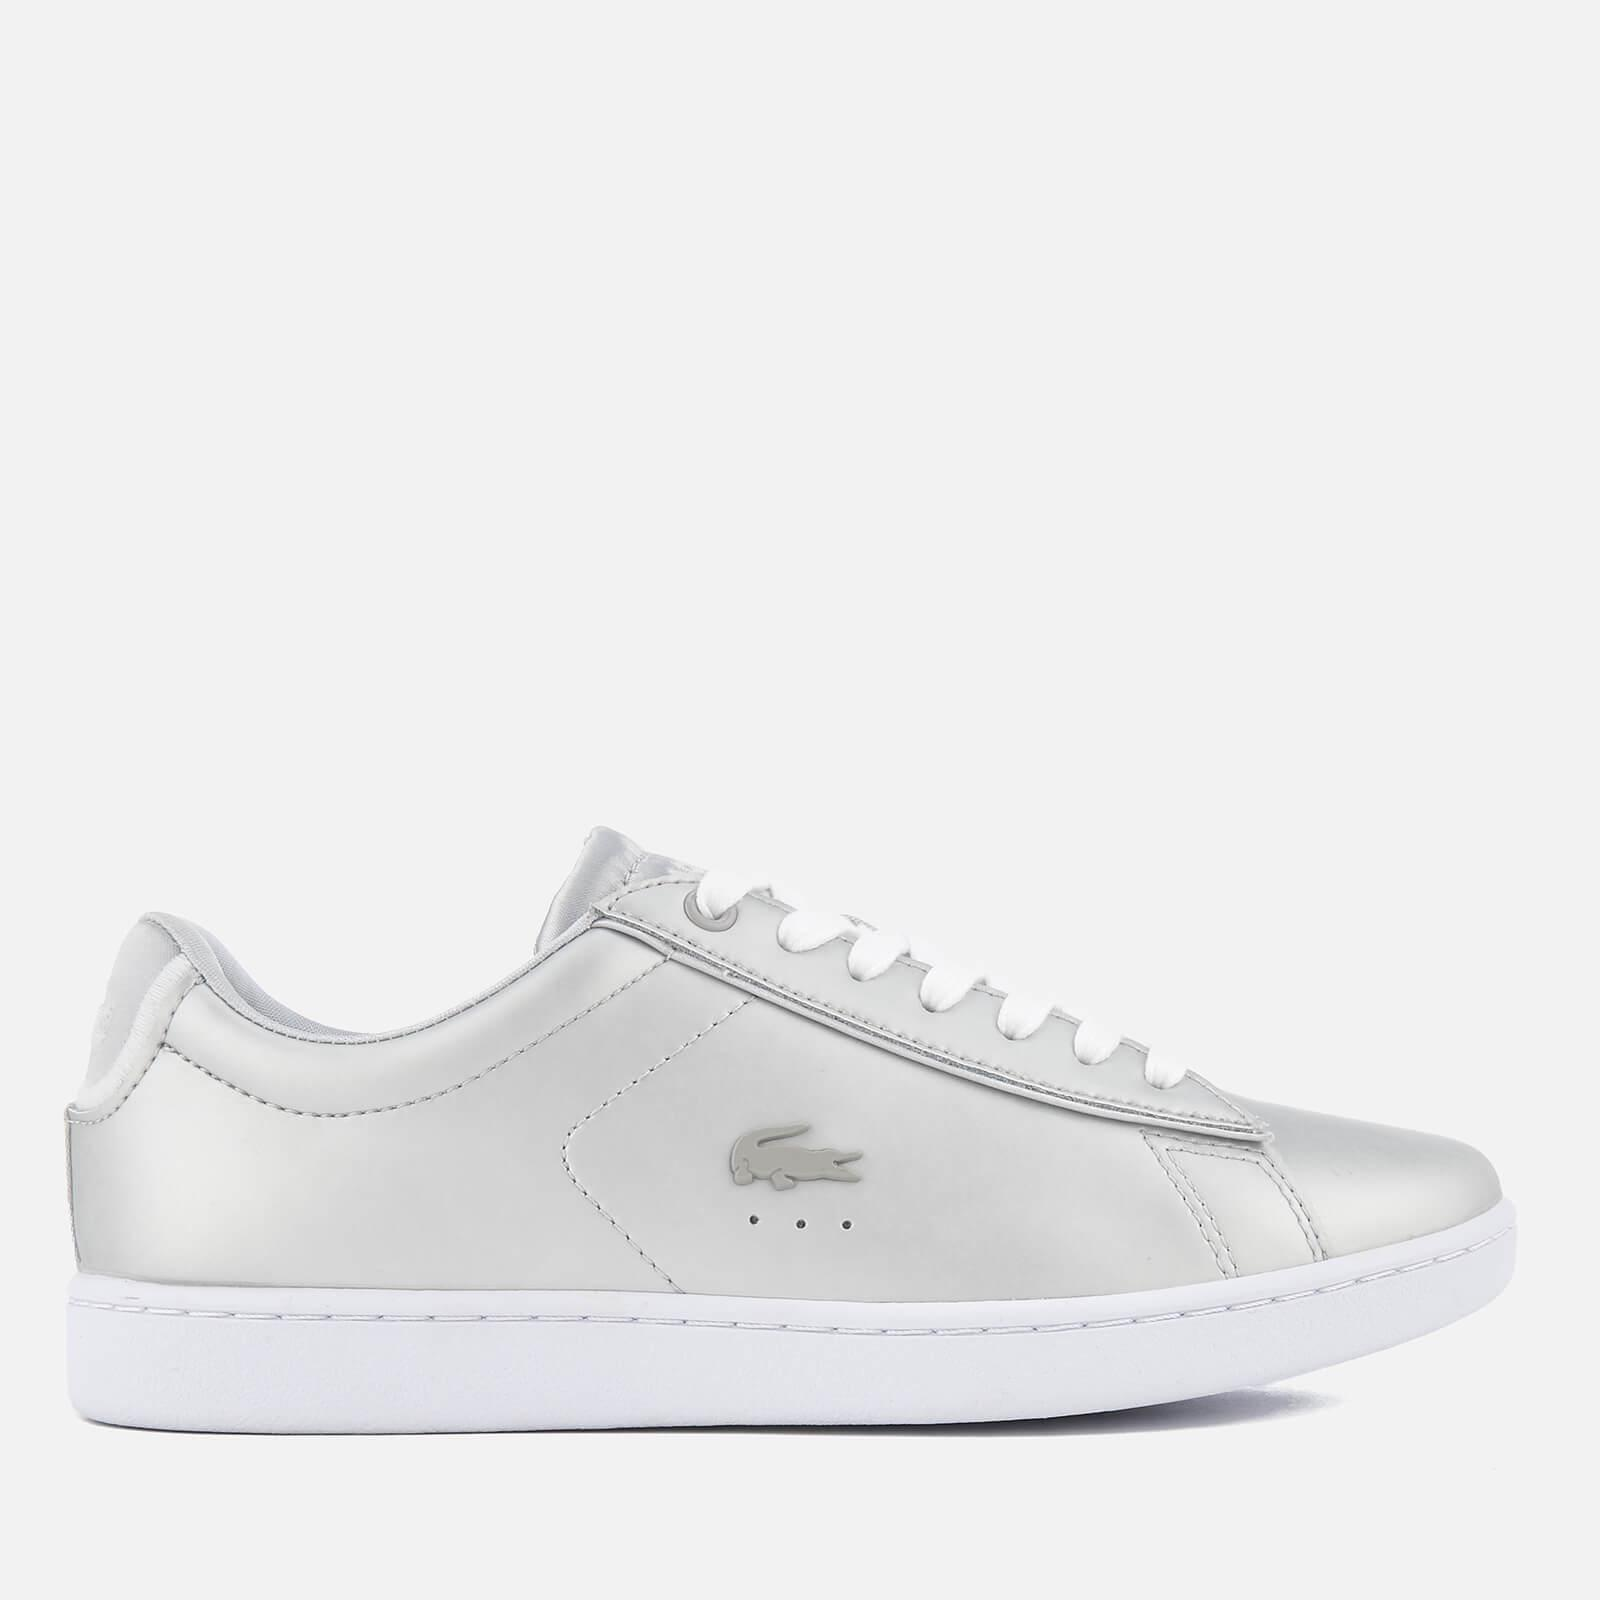 8c25a8812703 Lyst - Lacoste Carnaby Evo 118 1 Leather Trainers in Metallic